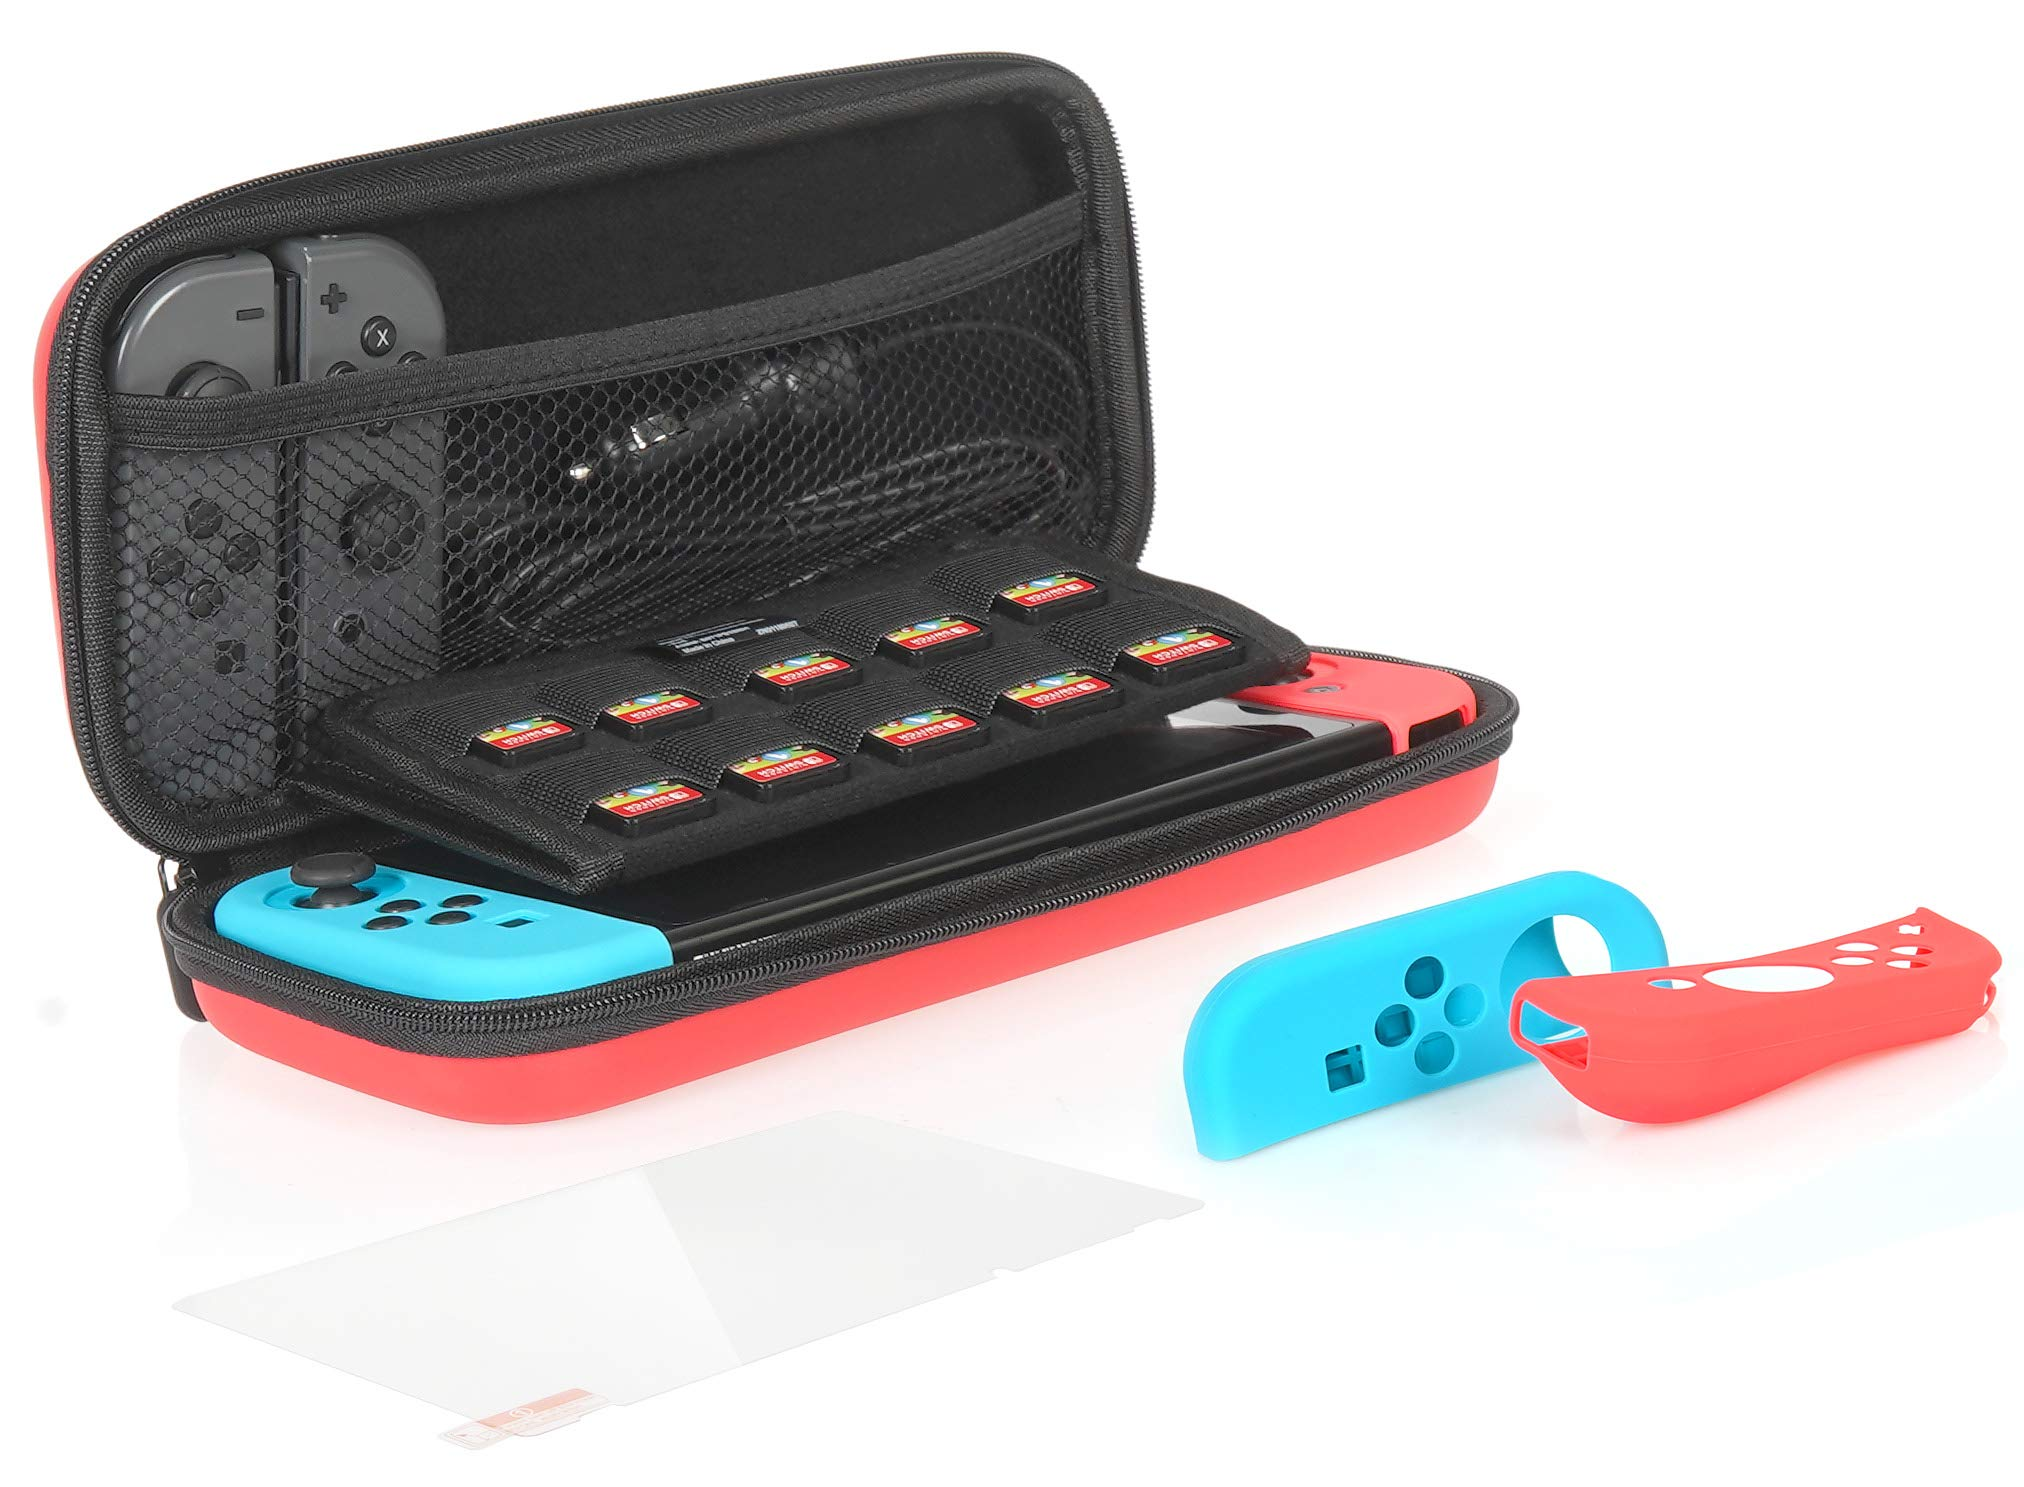 AmazonBasics Protection Kit for Nintendo Switch with Carrying Case and Tempered-glass Screen Protector - Red product image